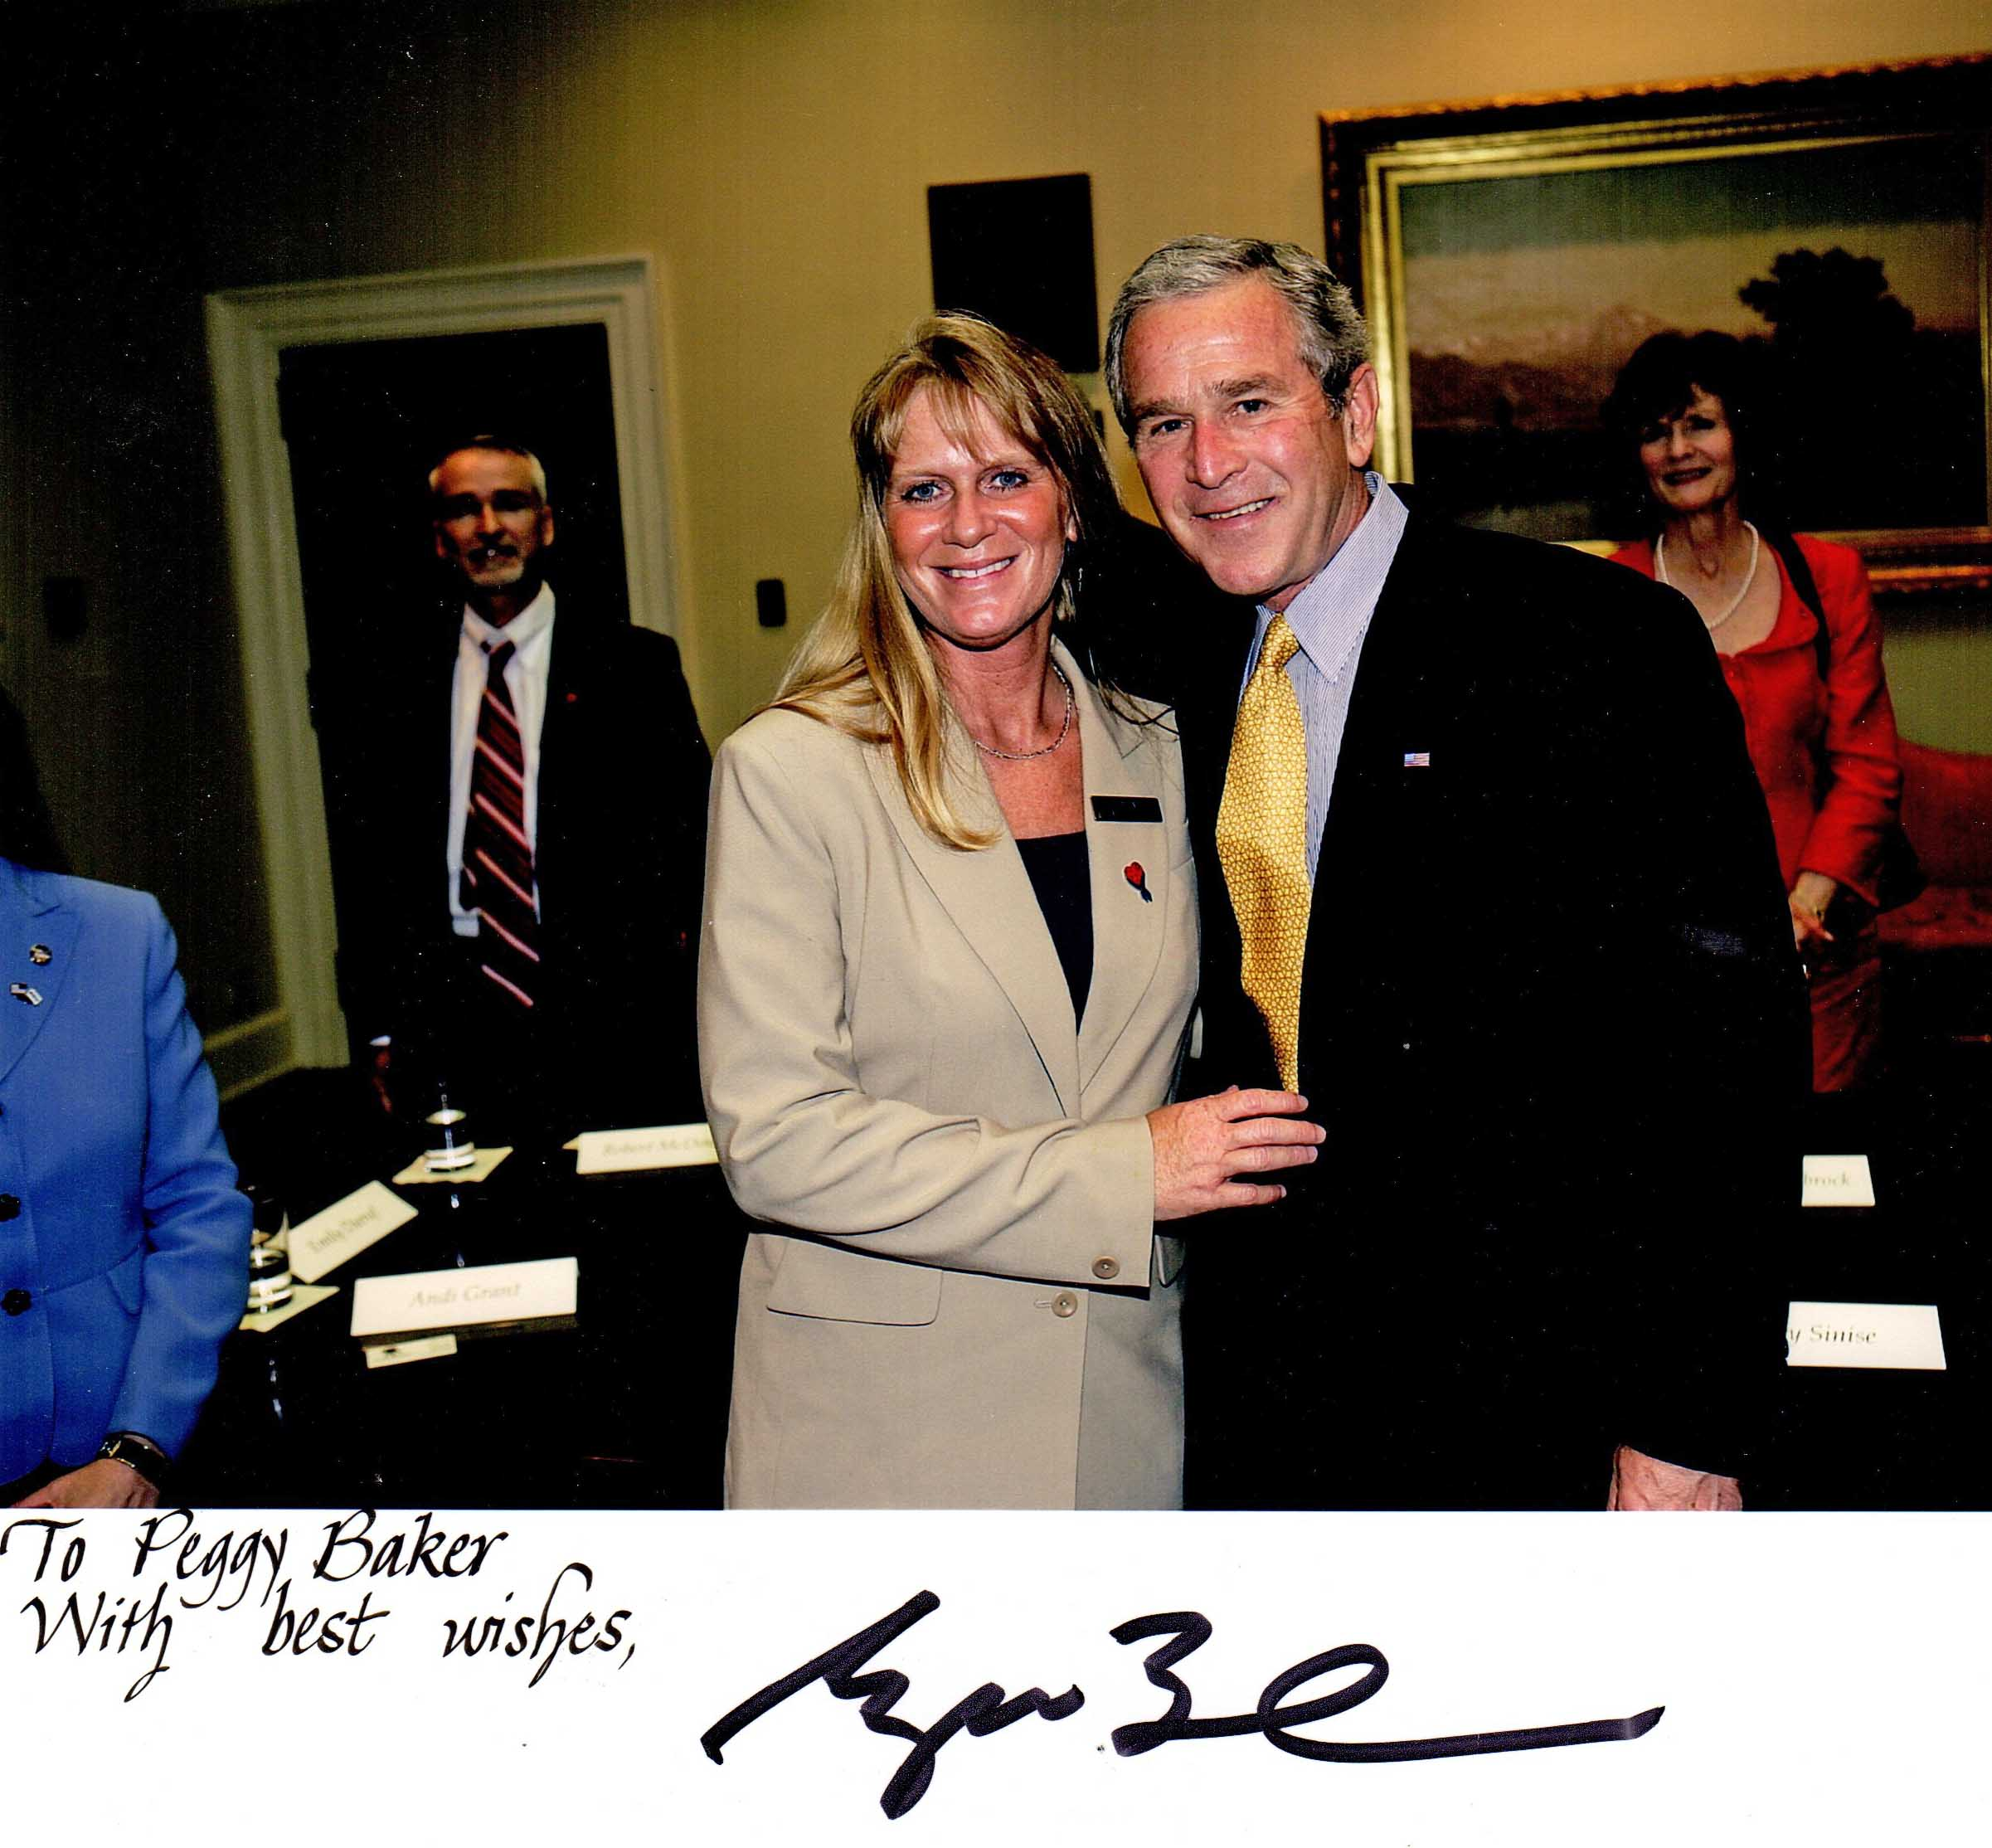 Peggy Baker with President George W Bush